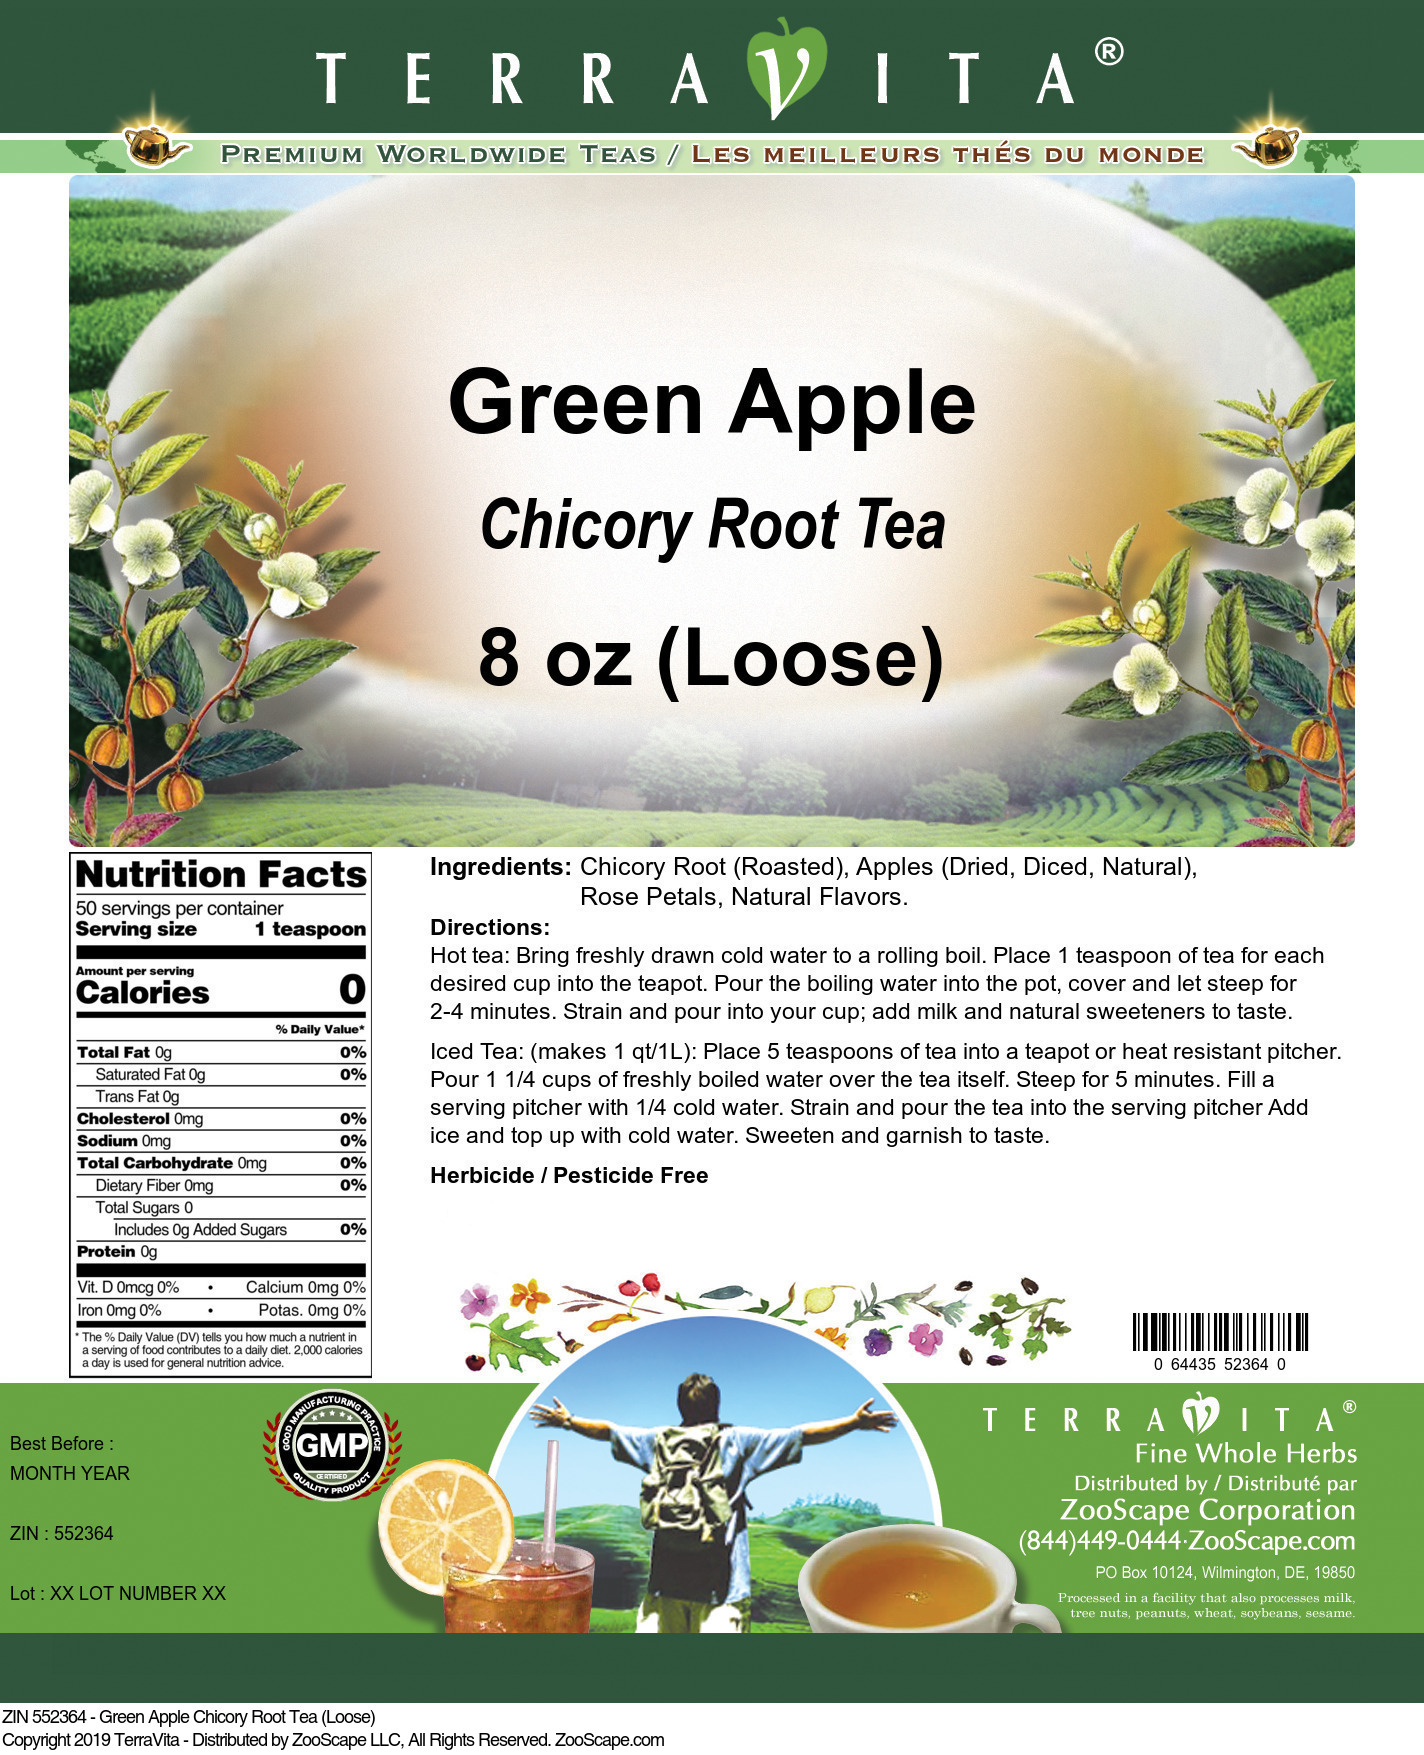 Green Apple Chicory Root